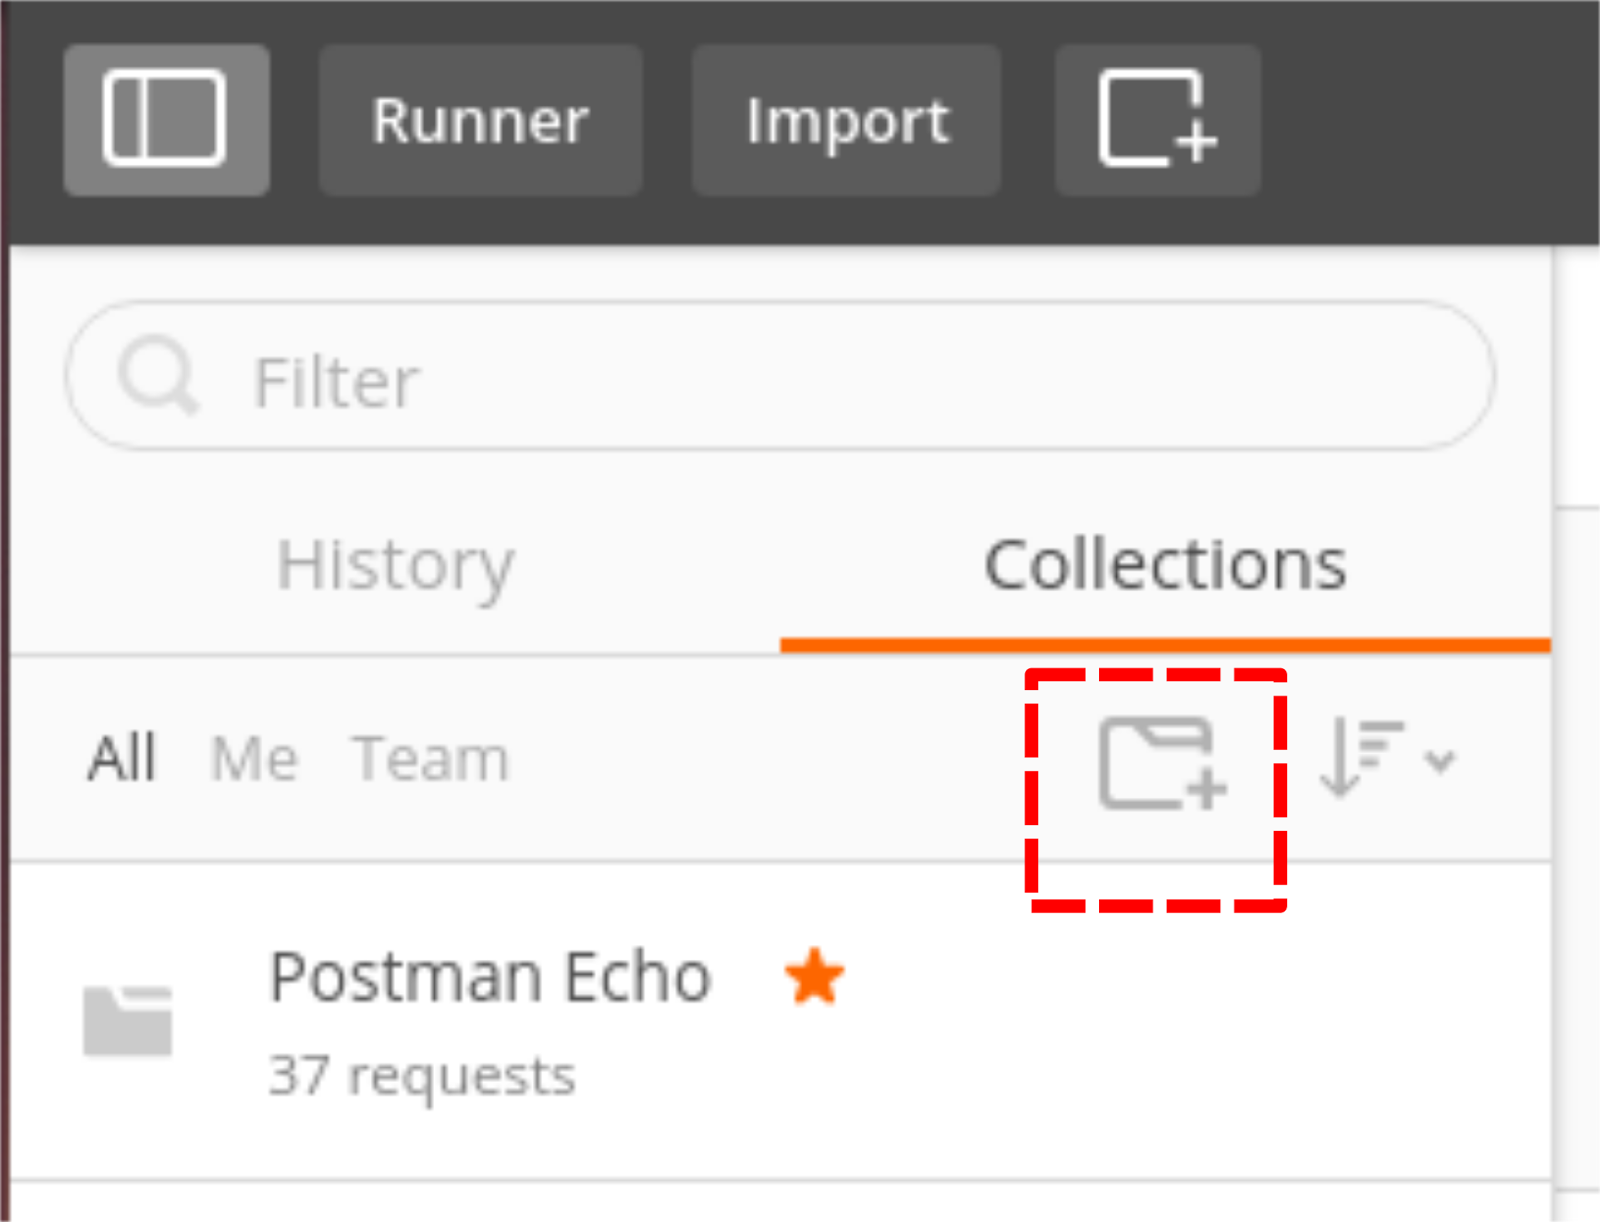 Postman - Adding Collections